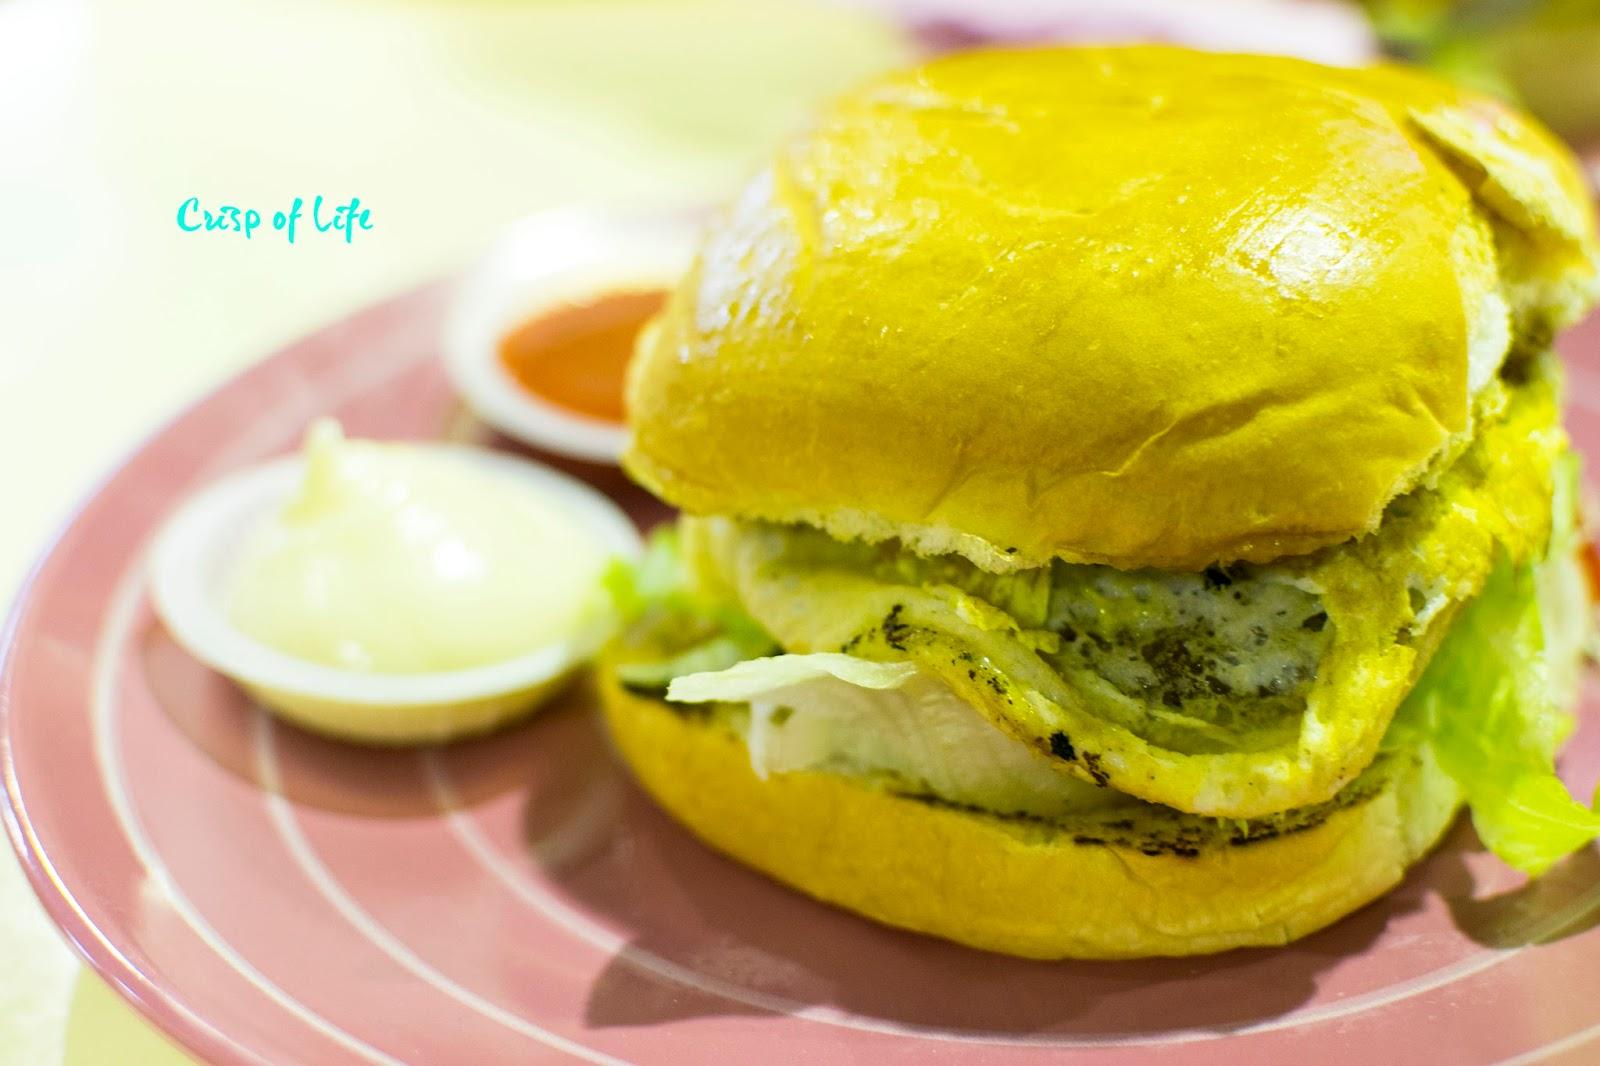 Textual description of firstImageUrl